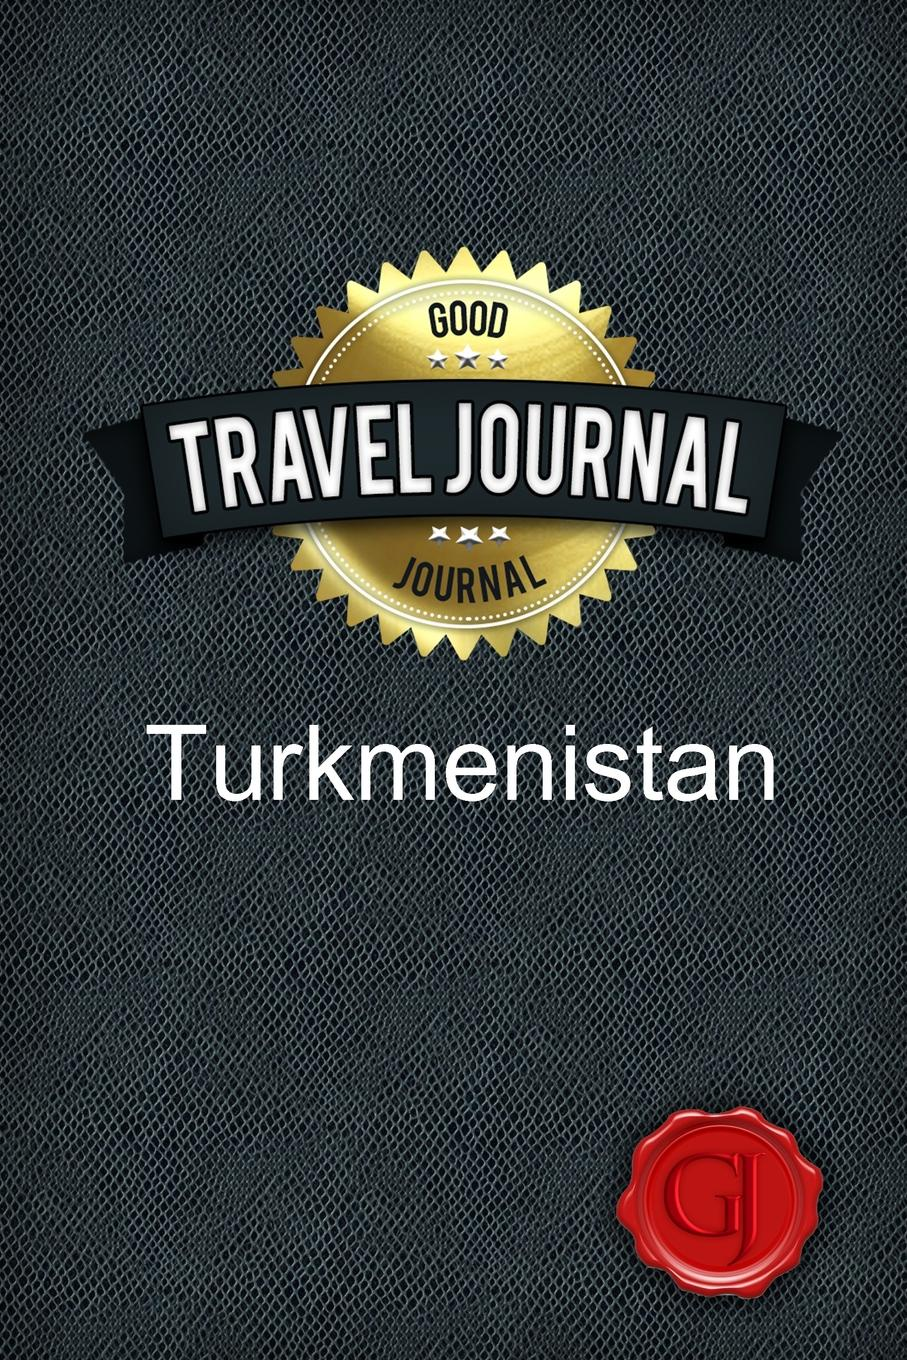 Good Journal Travel Journal Turkmenistan